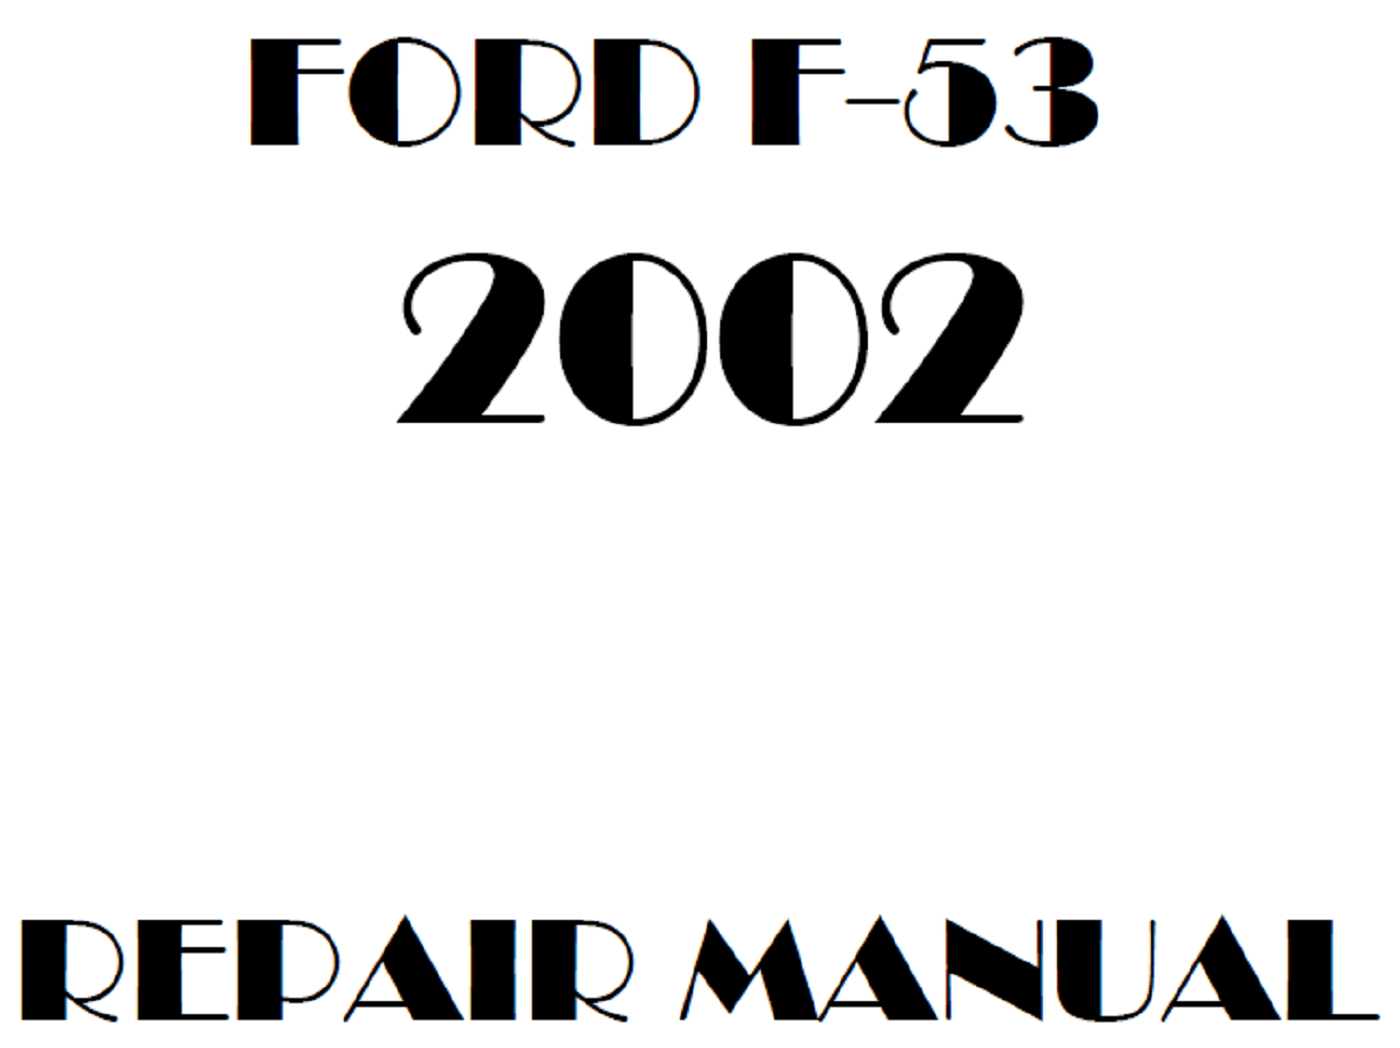 2002 Ford F53 repair manual